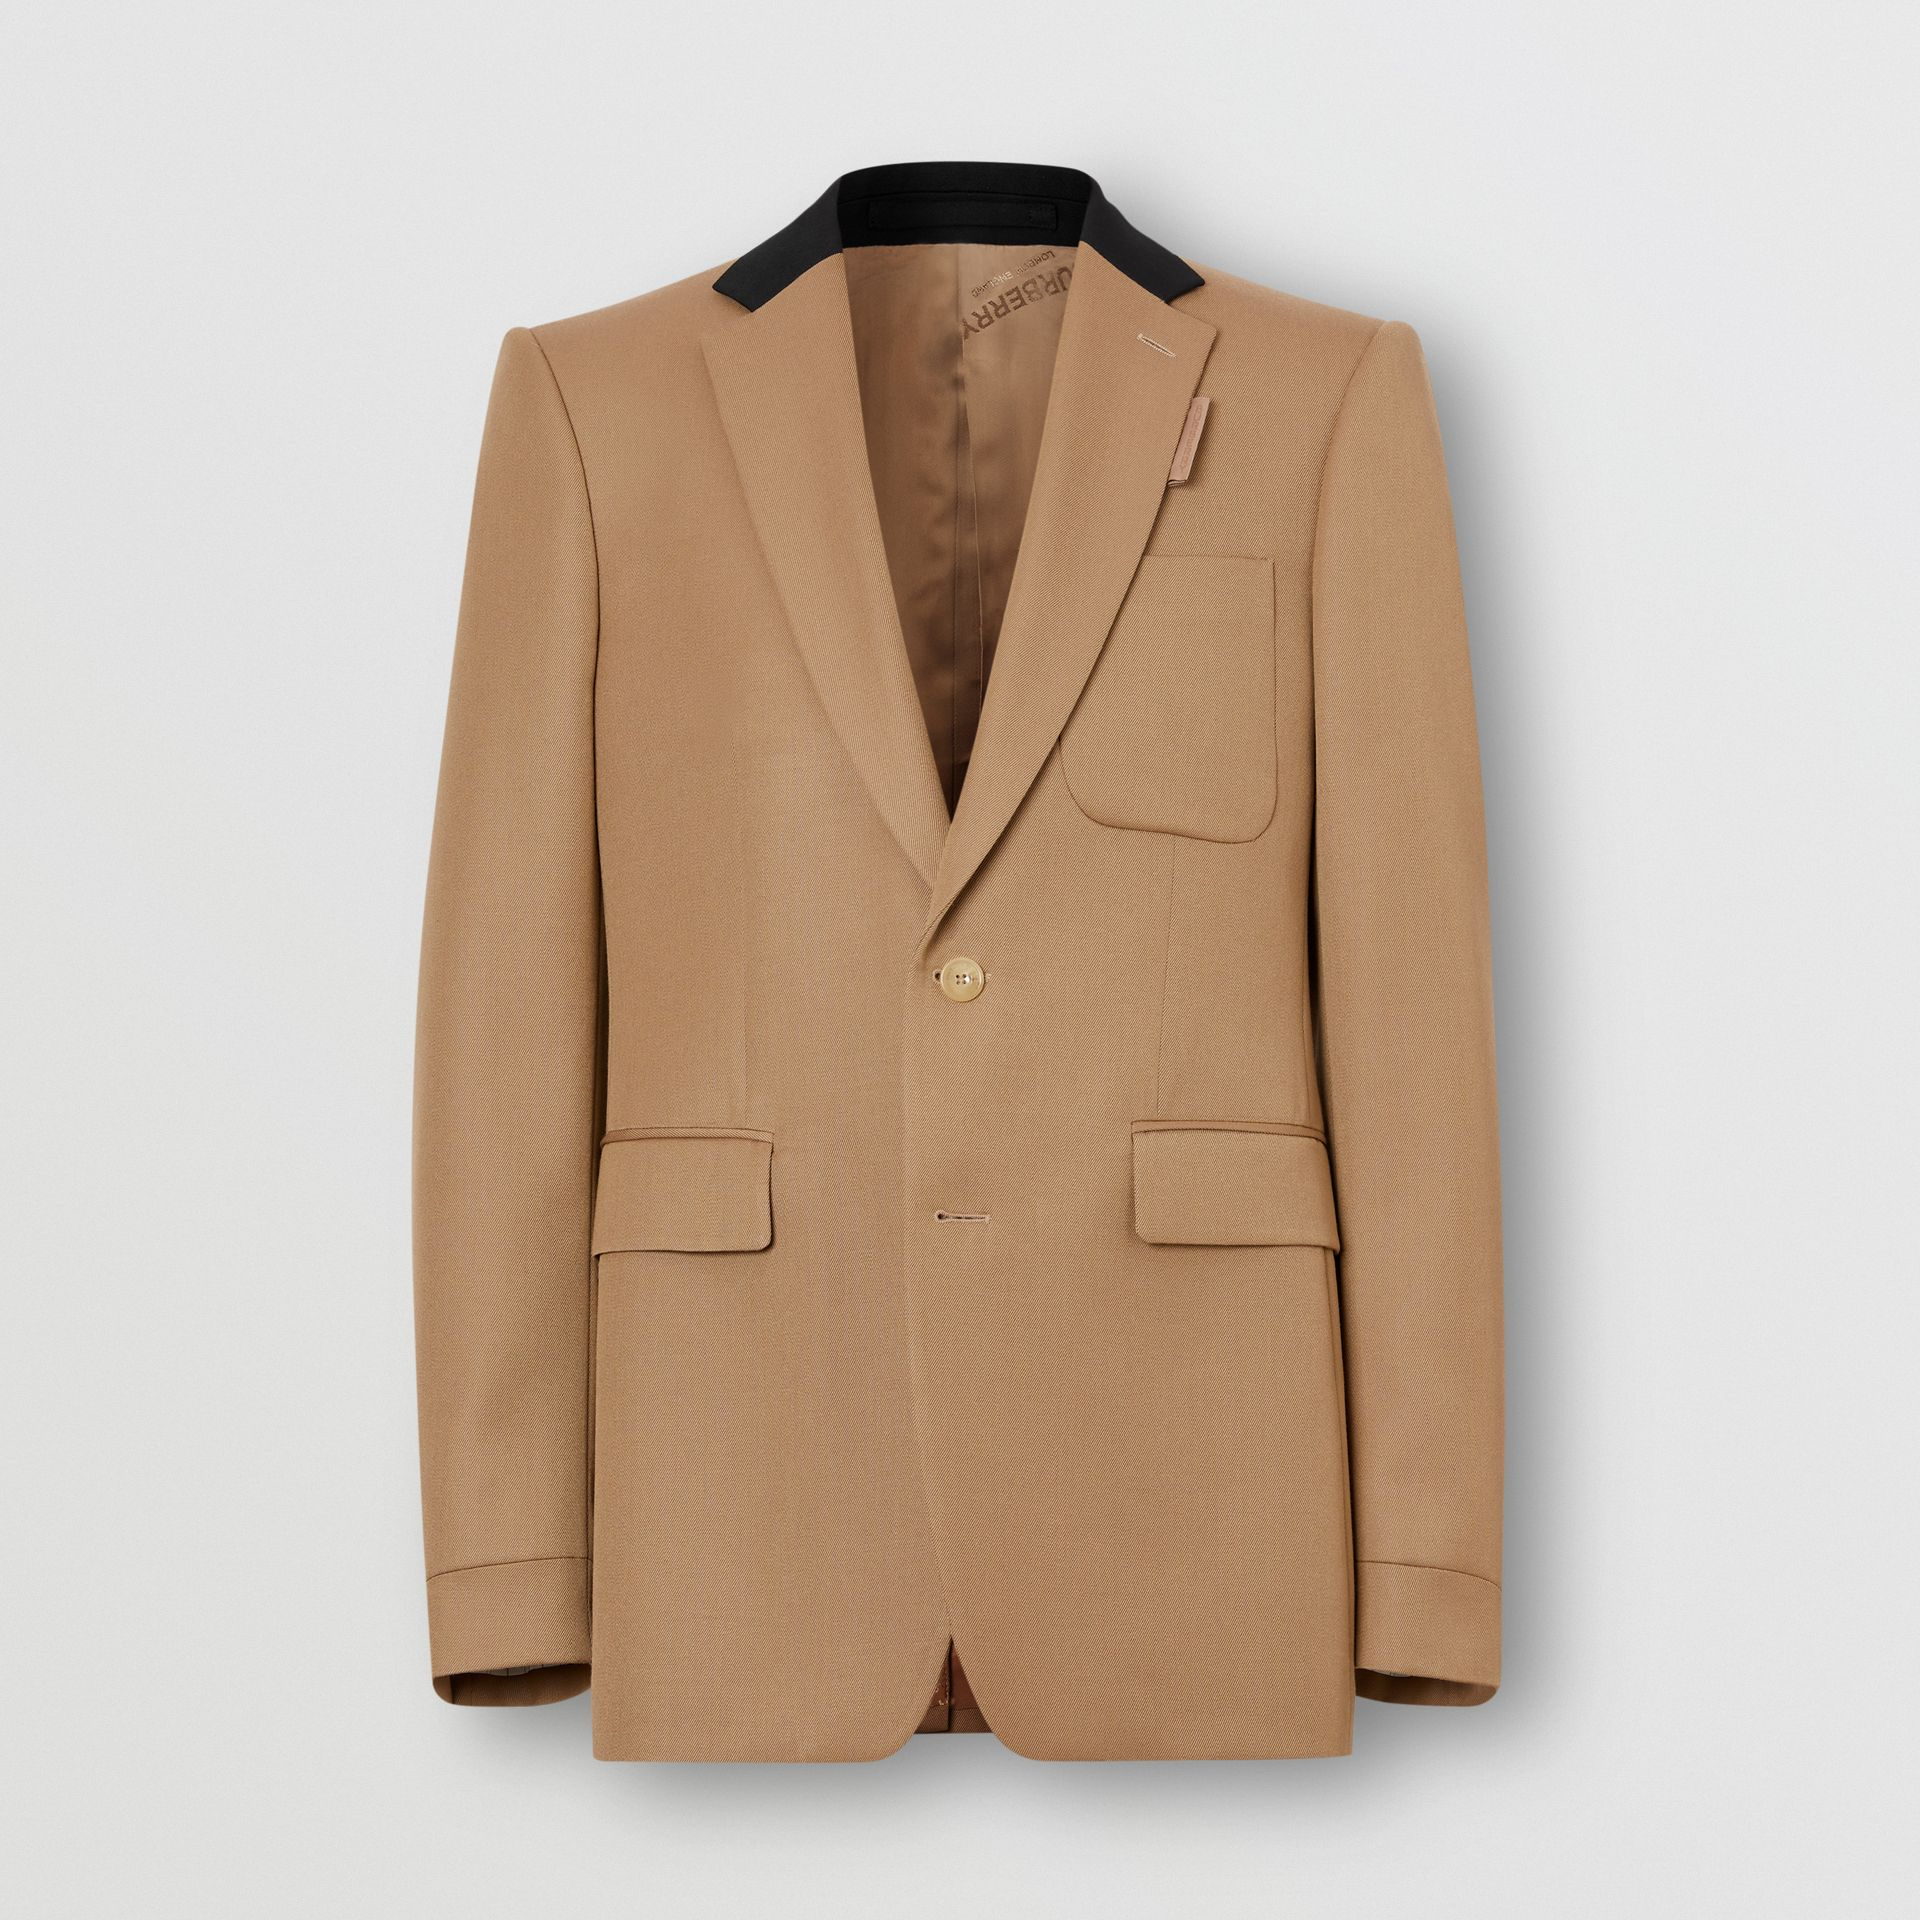 Classic Fit Two-tone Wool Tailored Jacket in Camel - Men | Burberry United Kingdom - gallery image 3